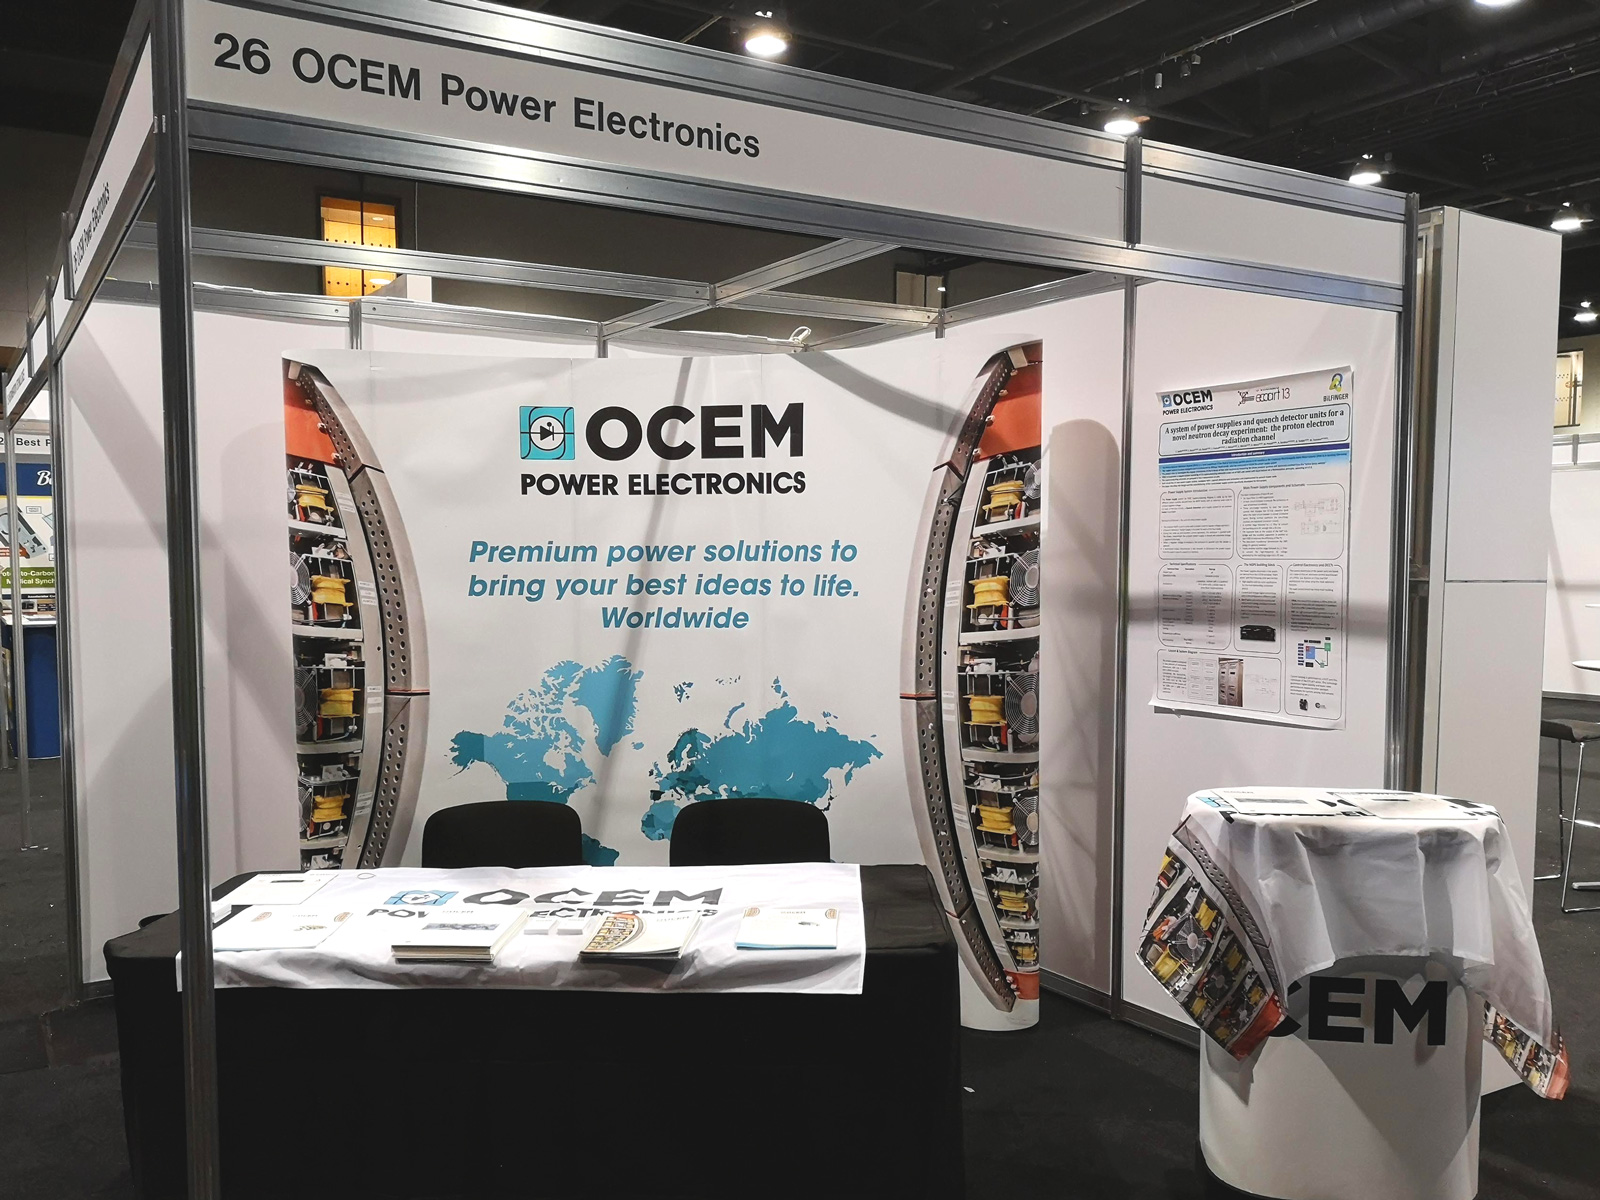 Visit OCEM Power Electronics sponsoring PTCOG 2019 in Manchester, UK!